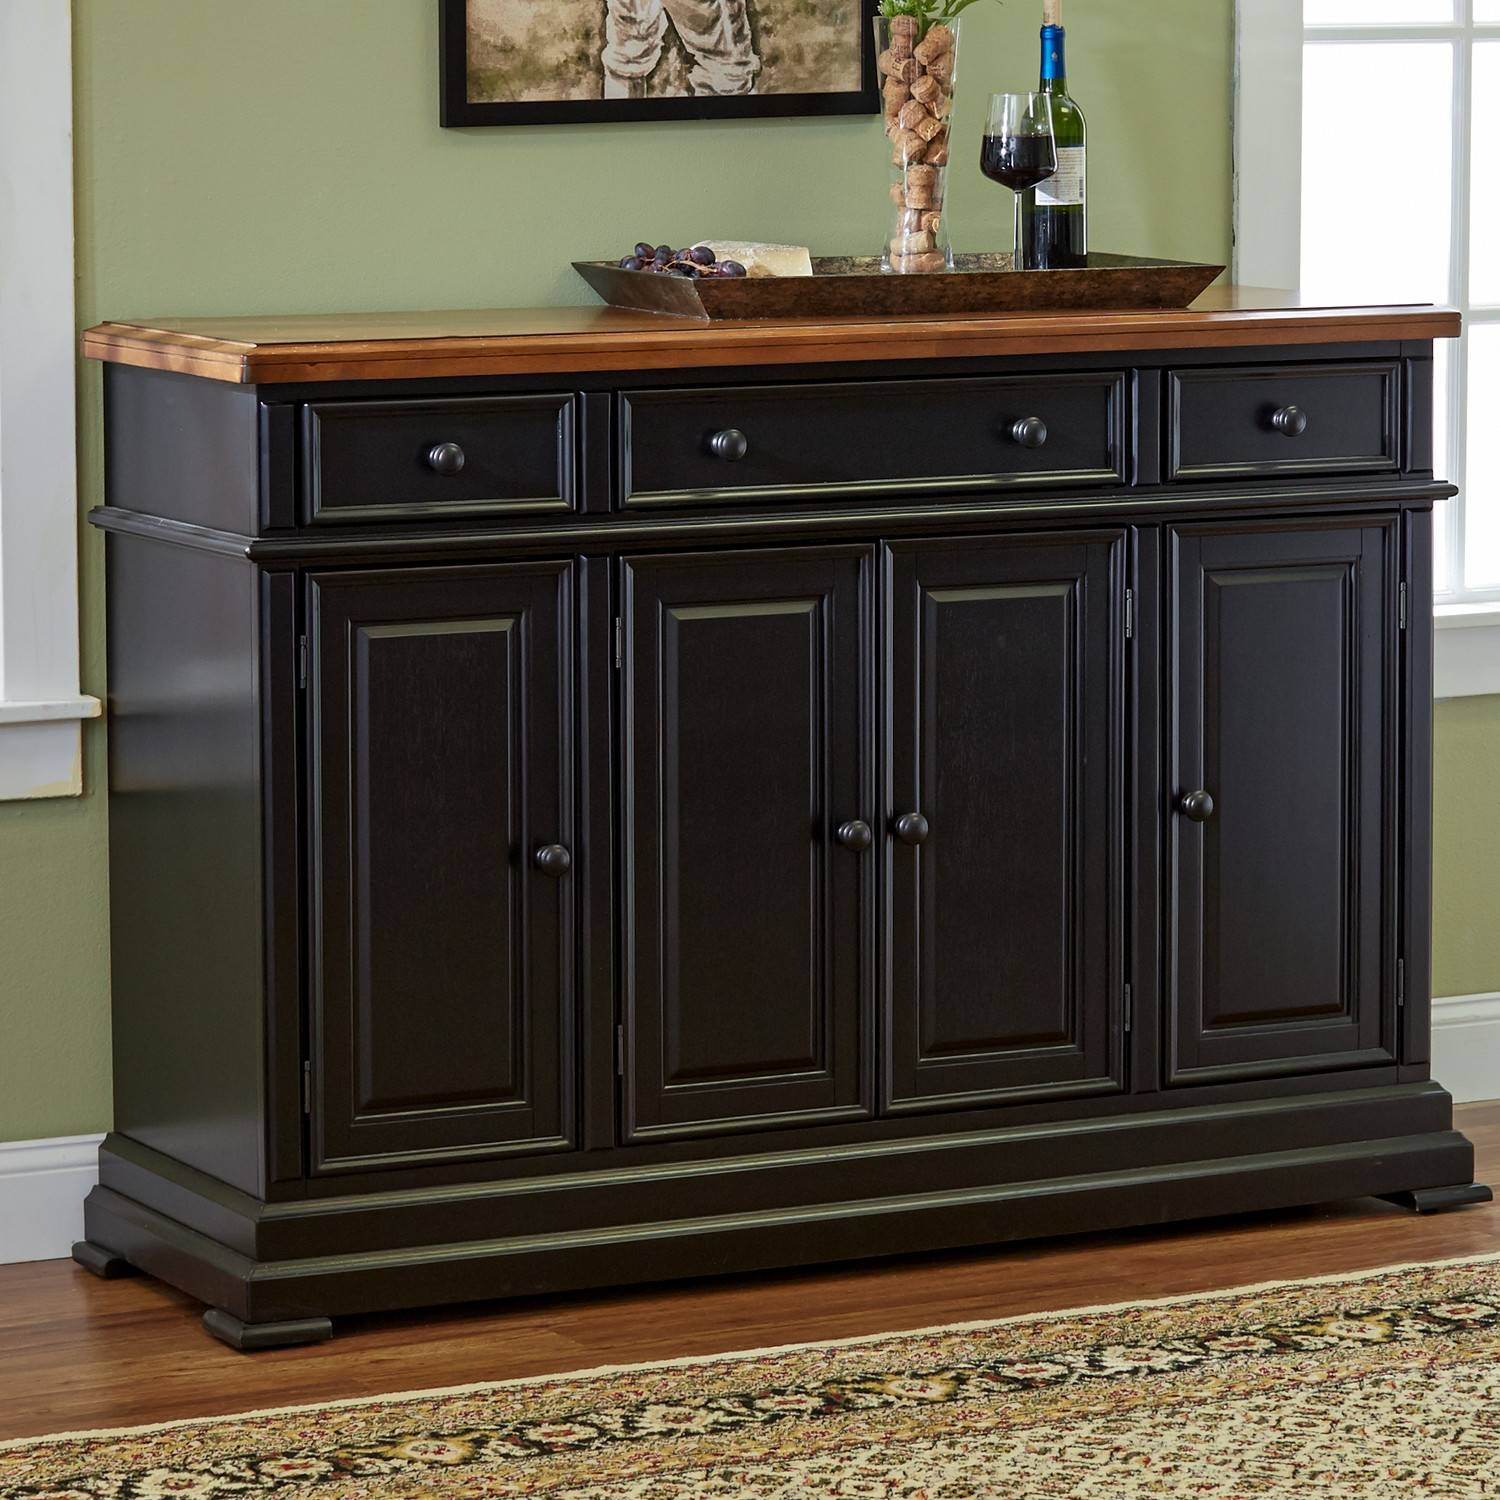 Furniture: Dark Wood Flooring And White Sideboard Buffet And Regarding Latest Black Sideboards And Buffets (#3 of 15)